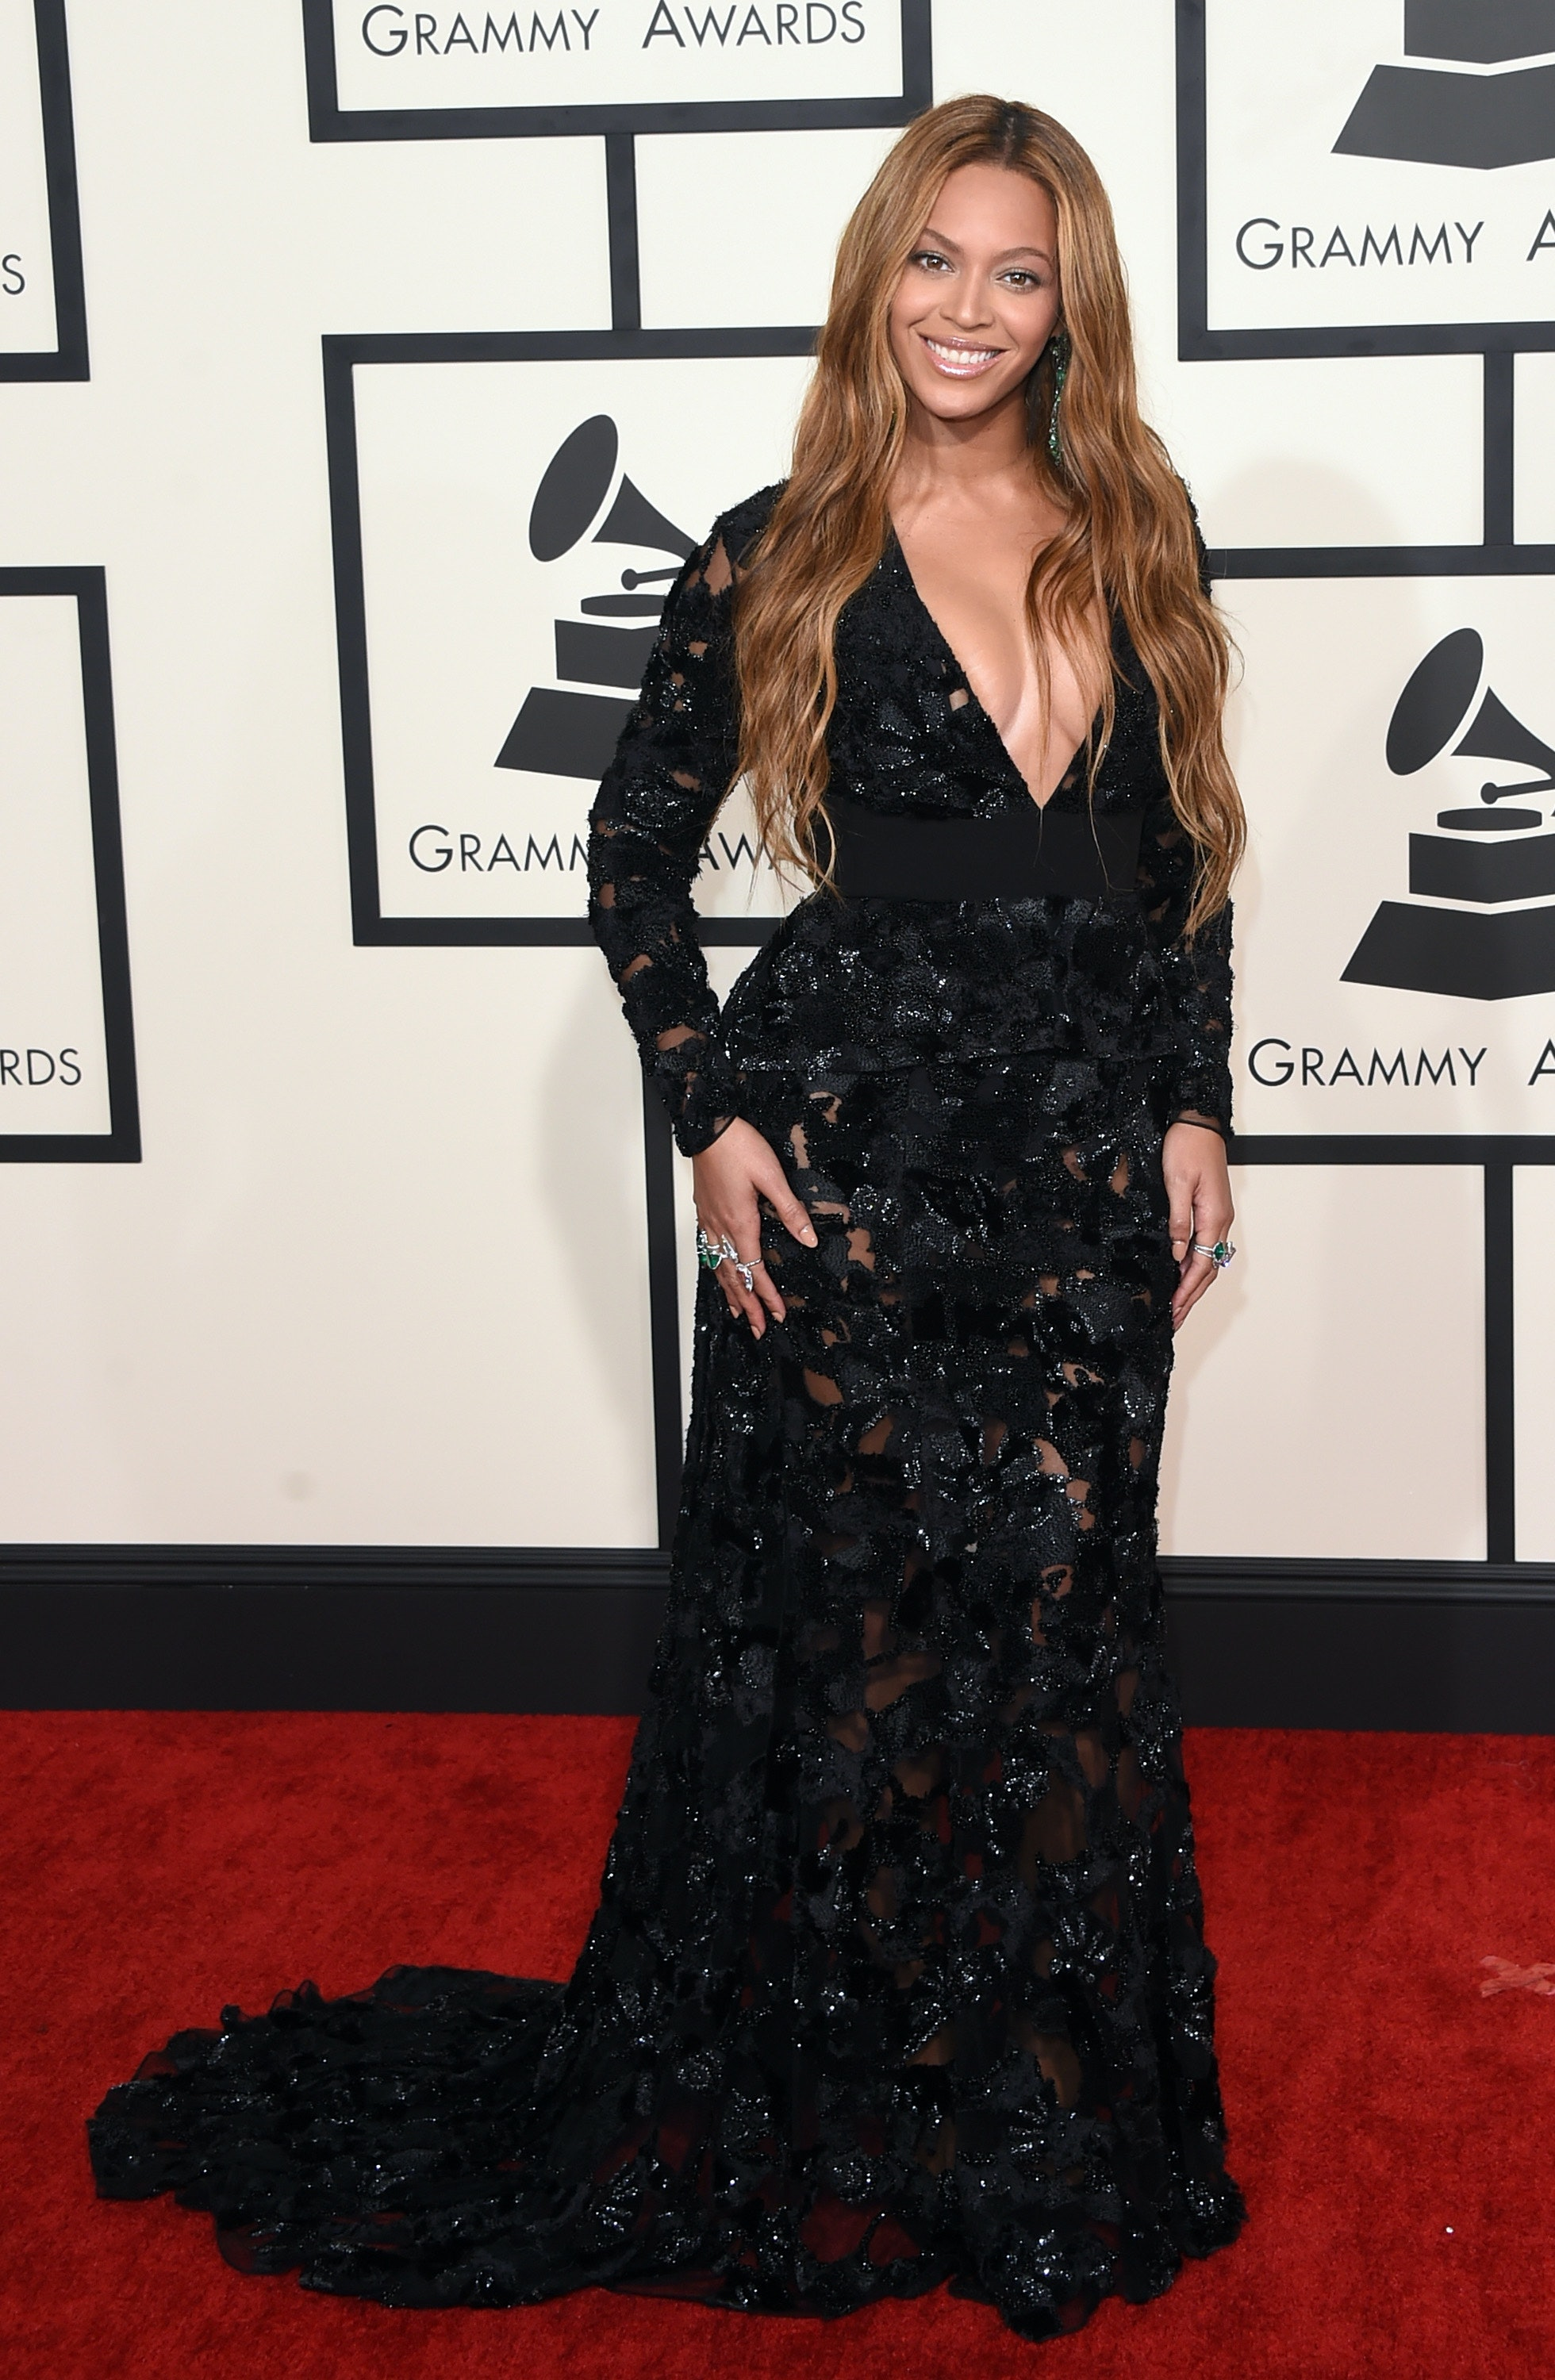 The 2015 Grammy Red Carpet Dresses, Suits, And Other Daring ...